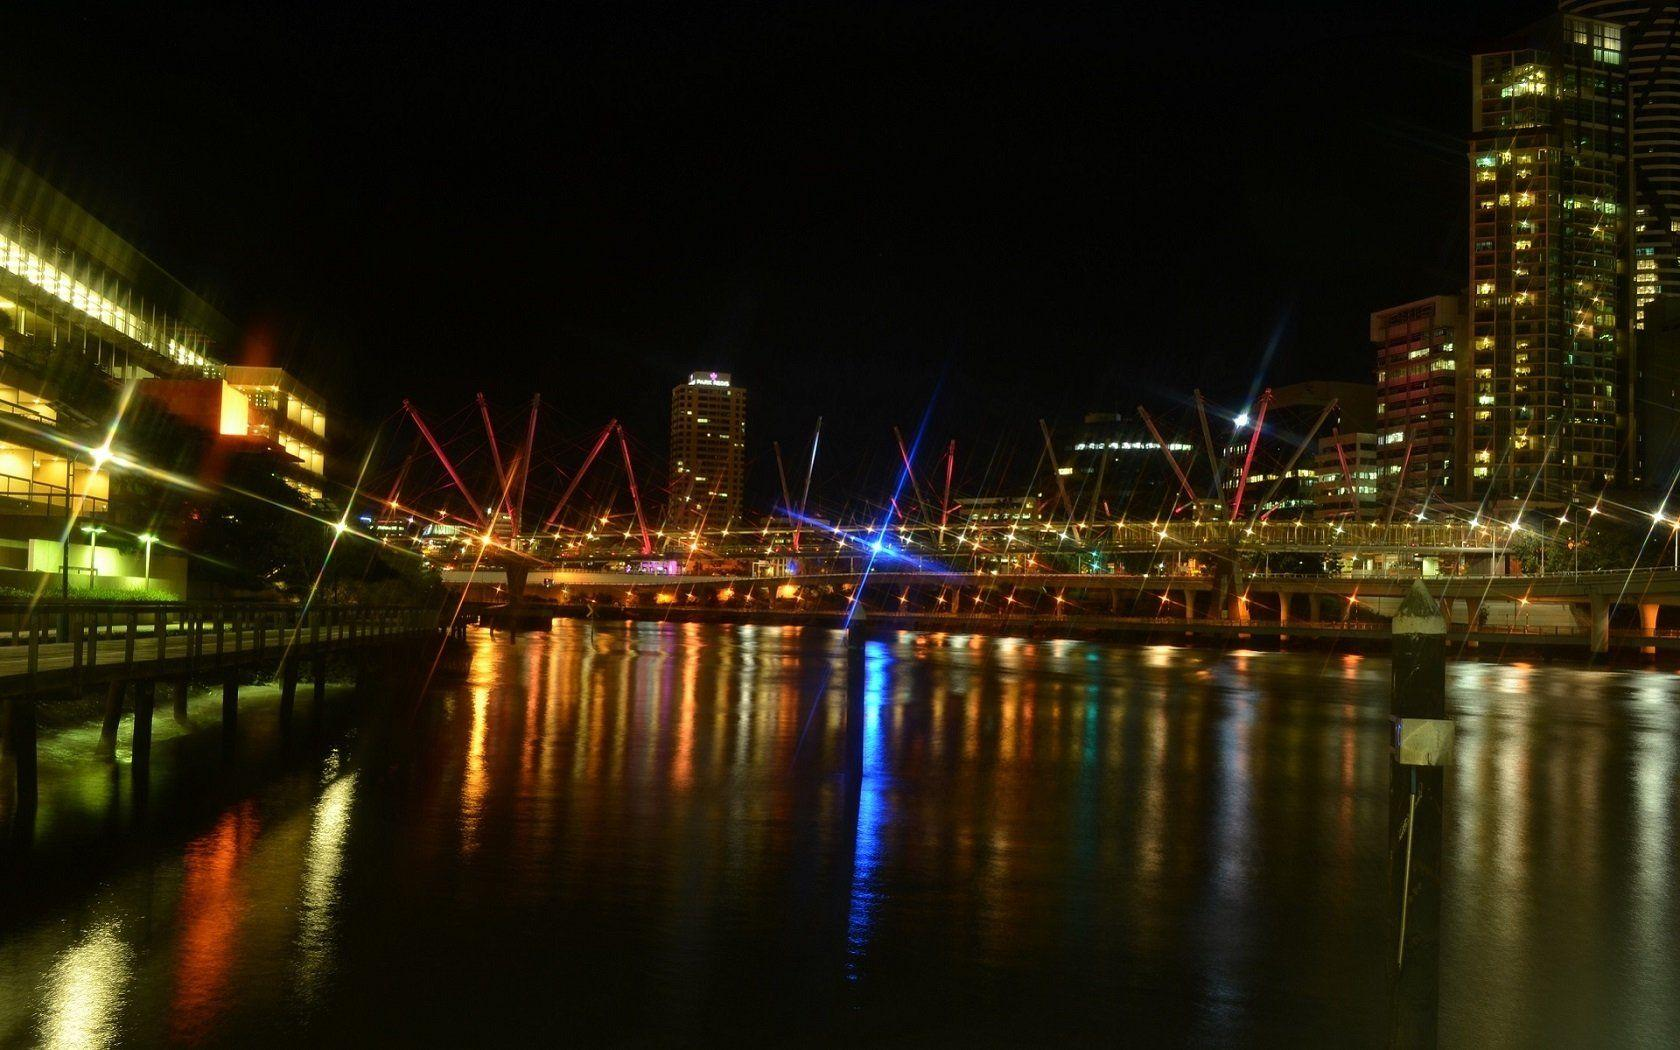 Brisbane City Lights Computer Wallpapers, Desktop Backgrounds ...